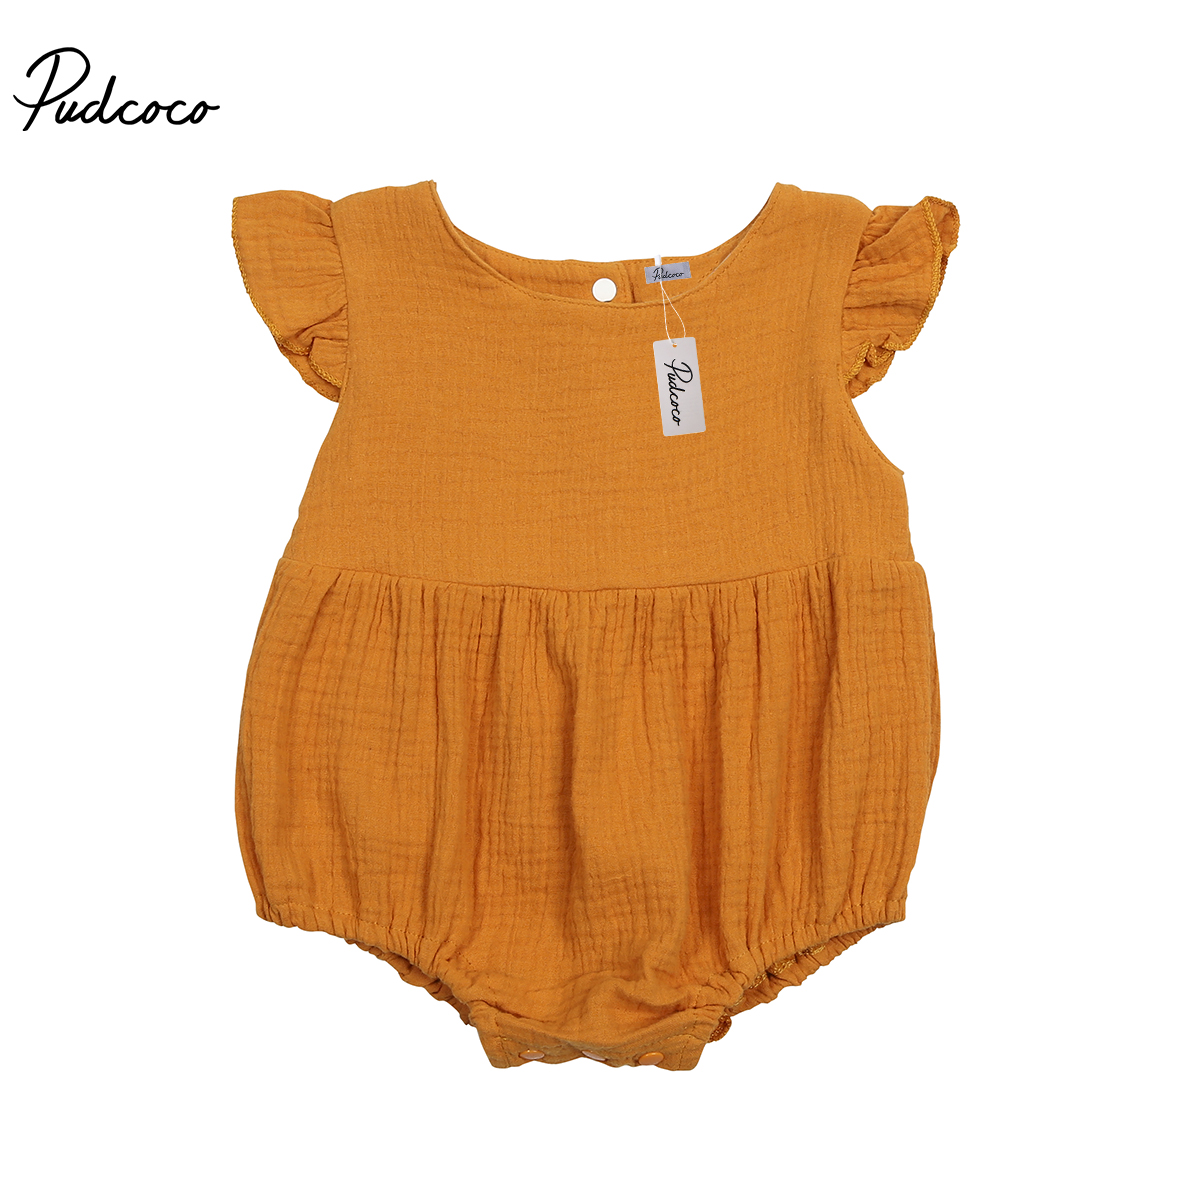 Pudcoco Cotton Baby   Rompers   Vintage Short Sleeve Baby Girl   Romper   Summer Baby Clothes 0-2 Years